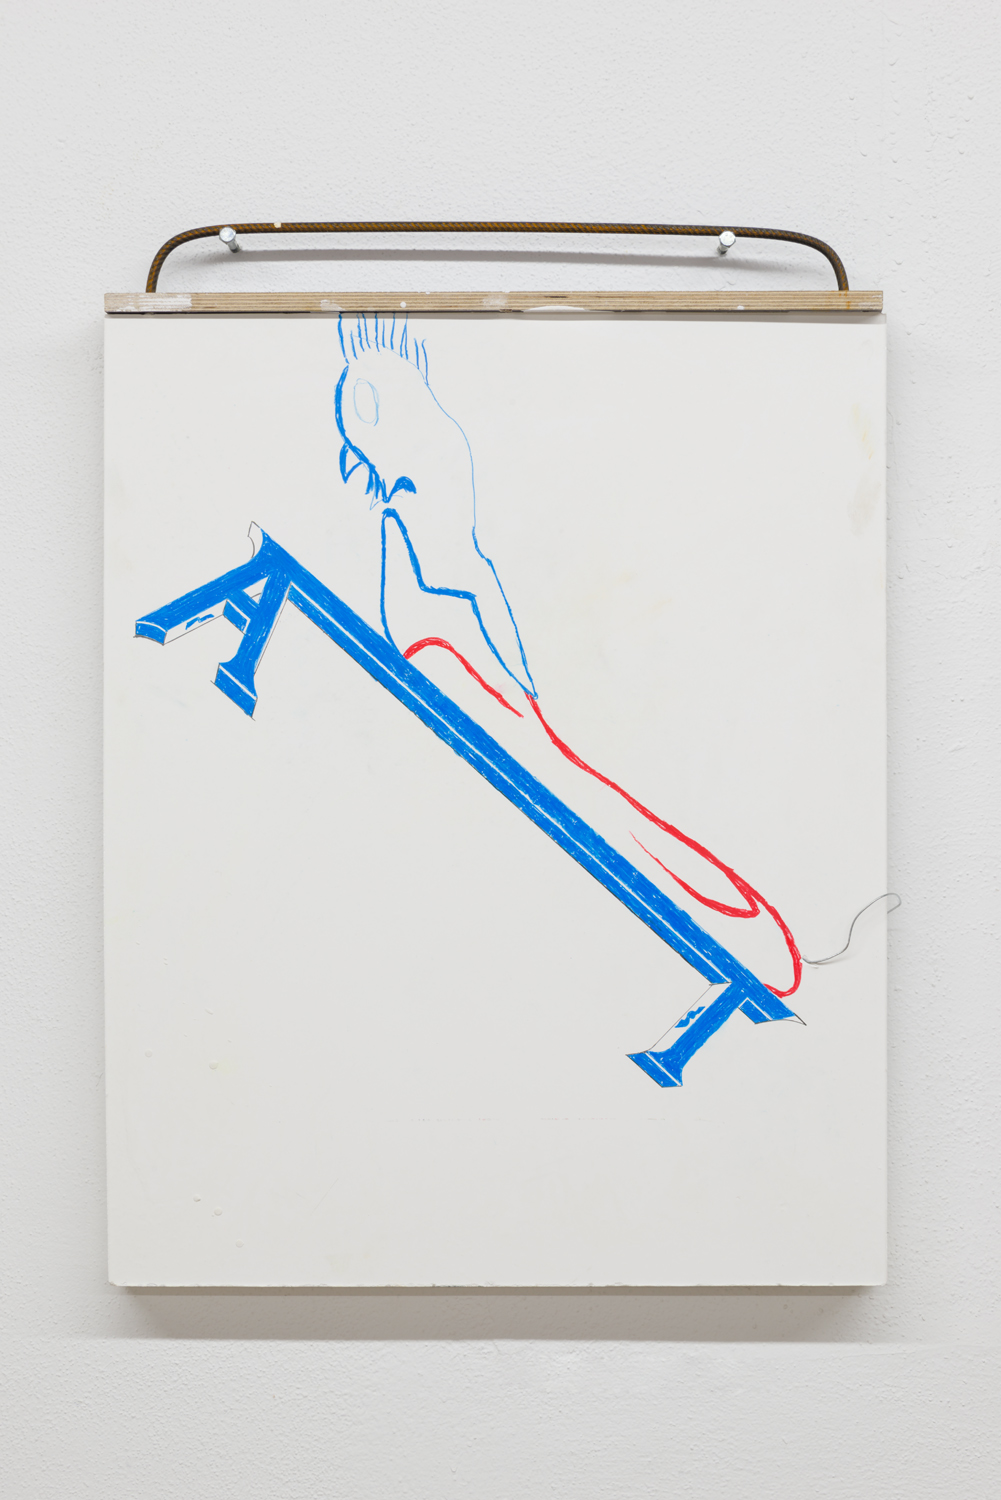 Why New French Art Is Lousy , 2017 Colored pencil on plaster, rebar, formwork board 82.5 x 60.5 x 8 cm ; 32 1/2 x 23 3/4 x 3 1/4 in